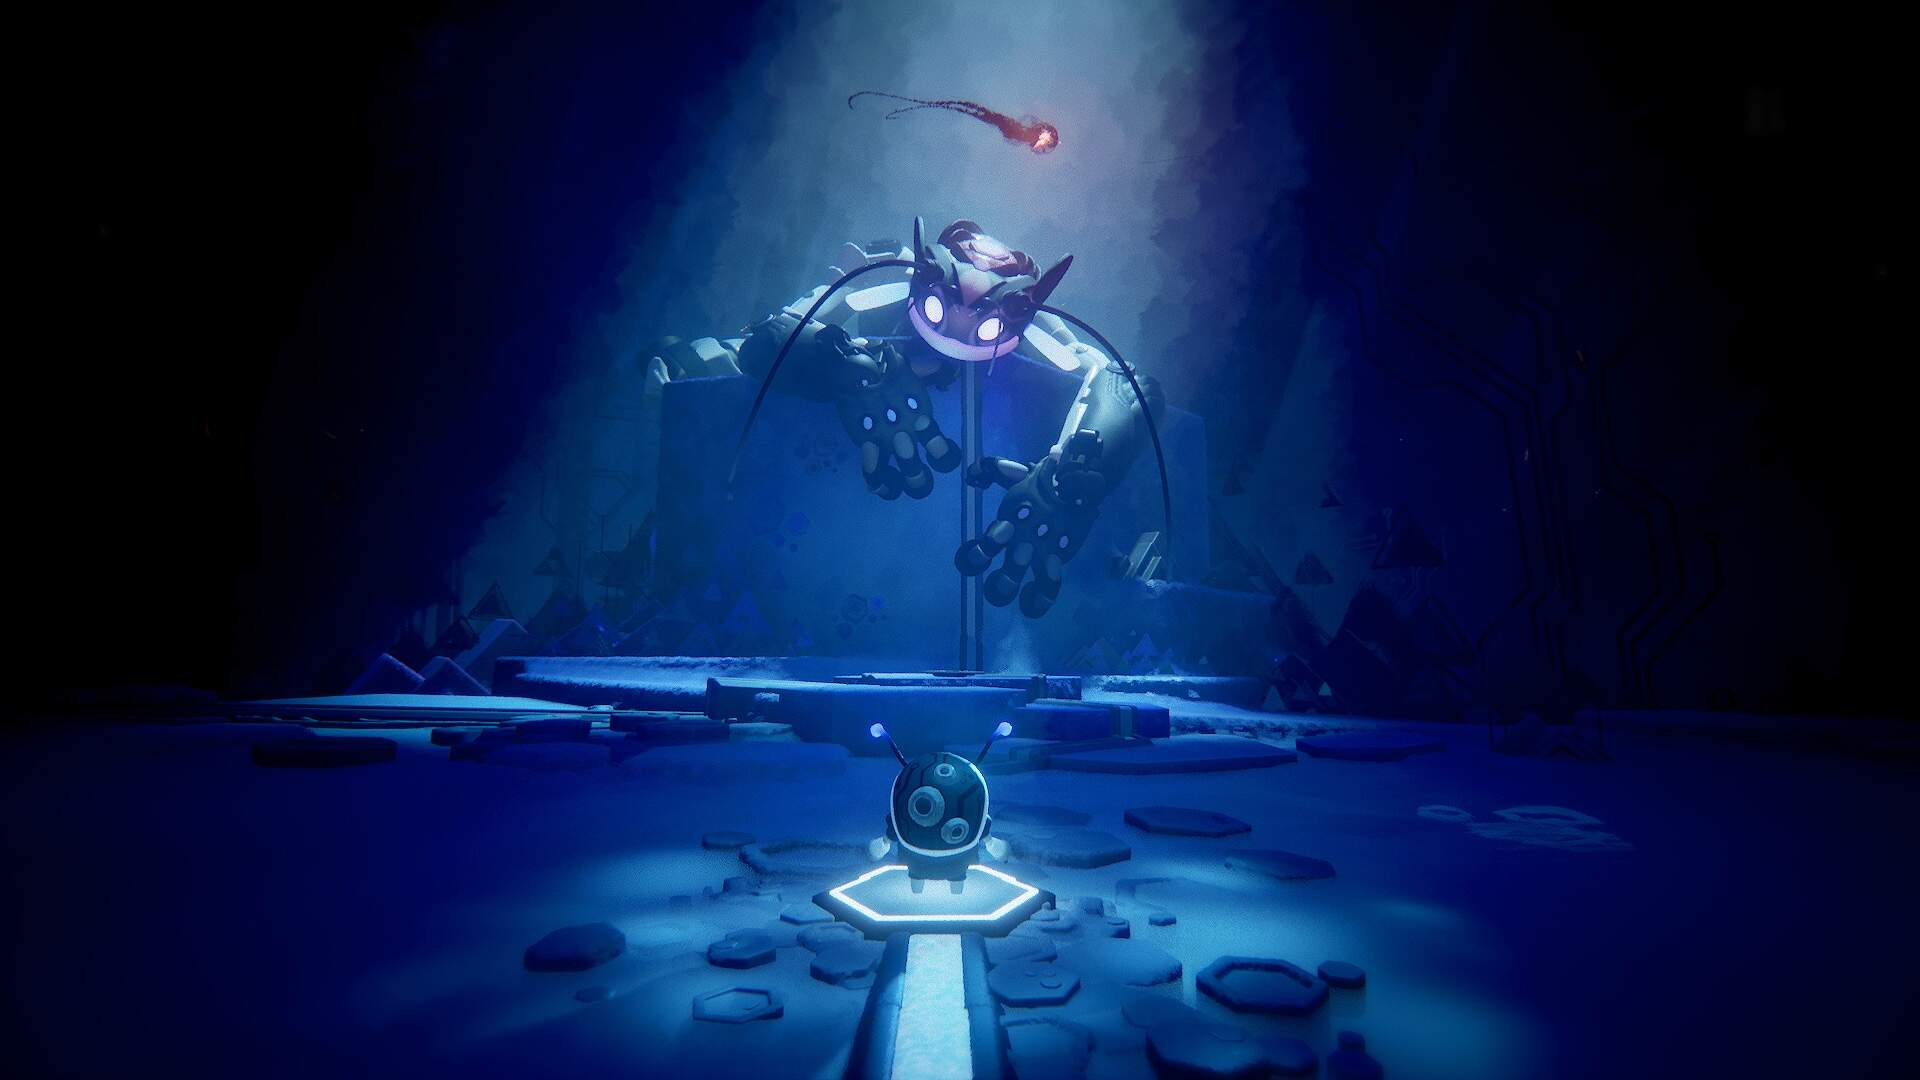 Media Molecule's Dreams Comes to Life Early Next Year